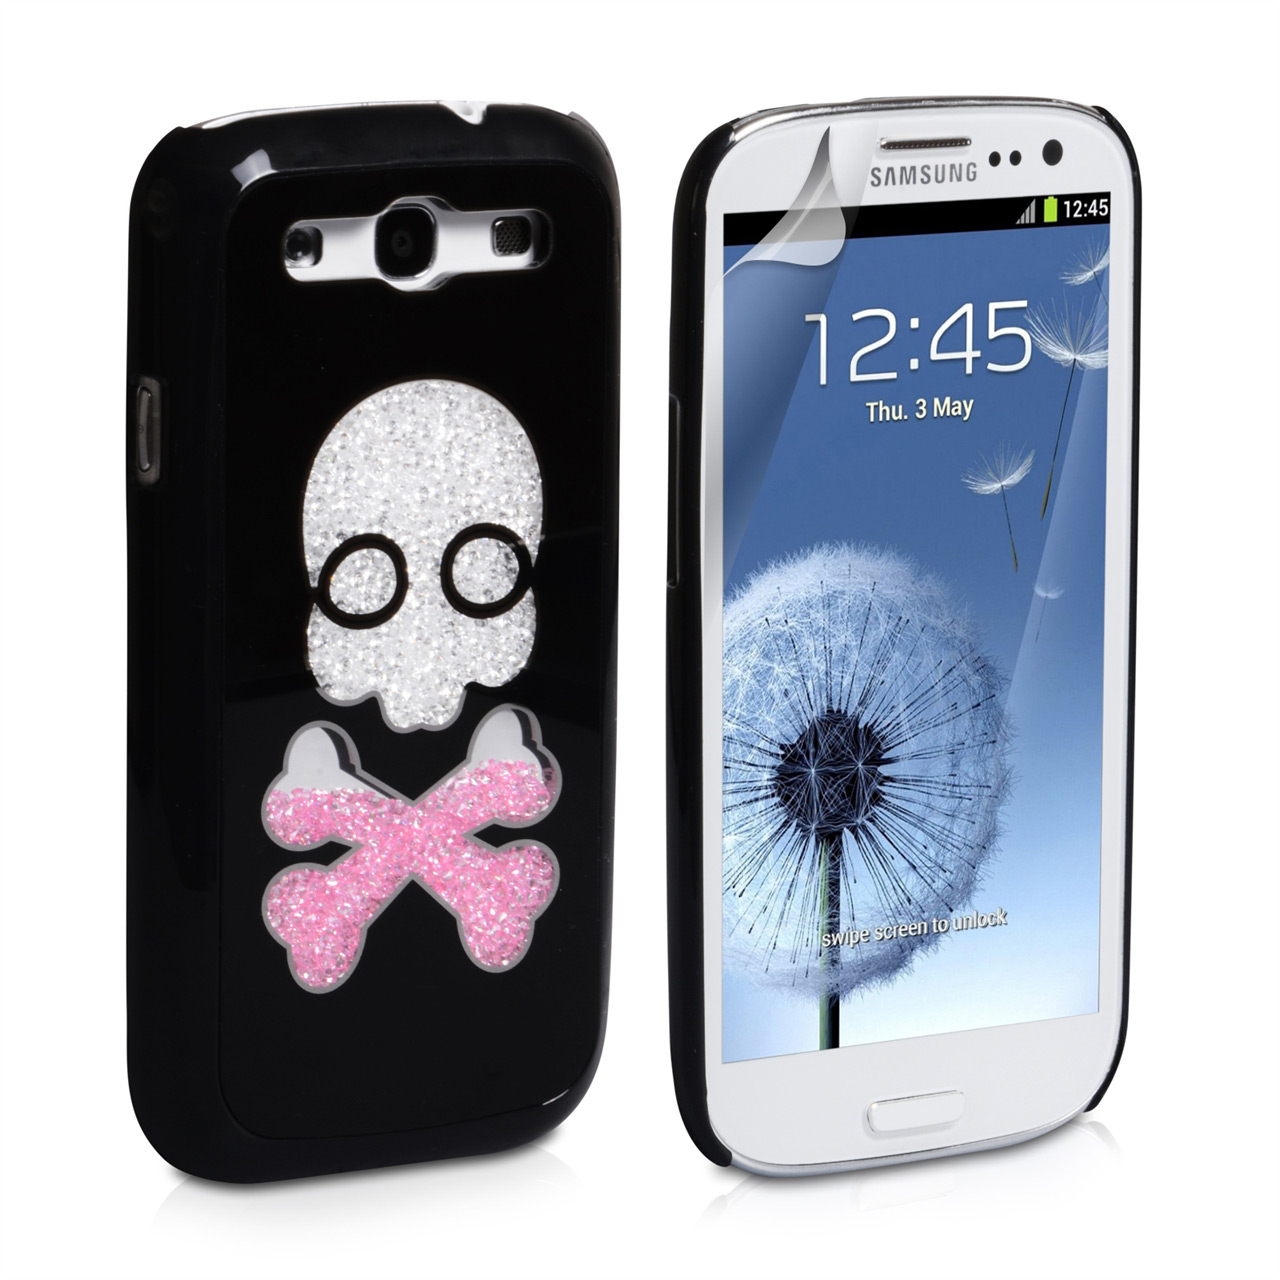 YouSave Accessories Samsung Galaxy S3 Skull Hard Case - Black